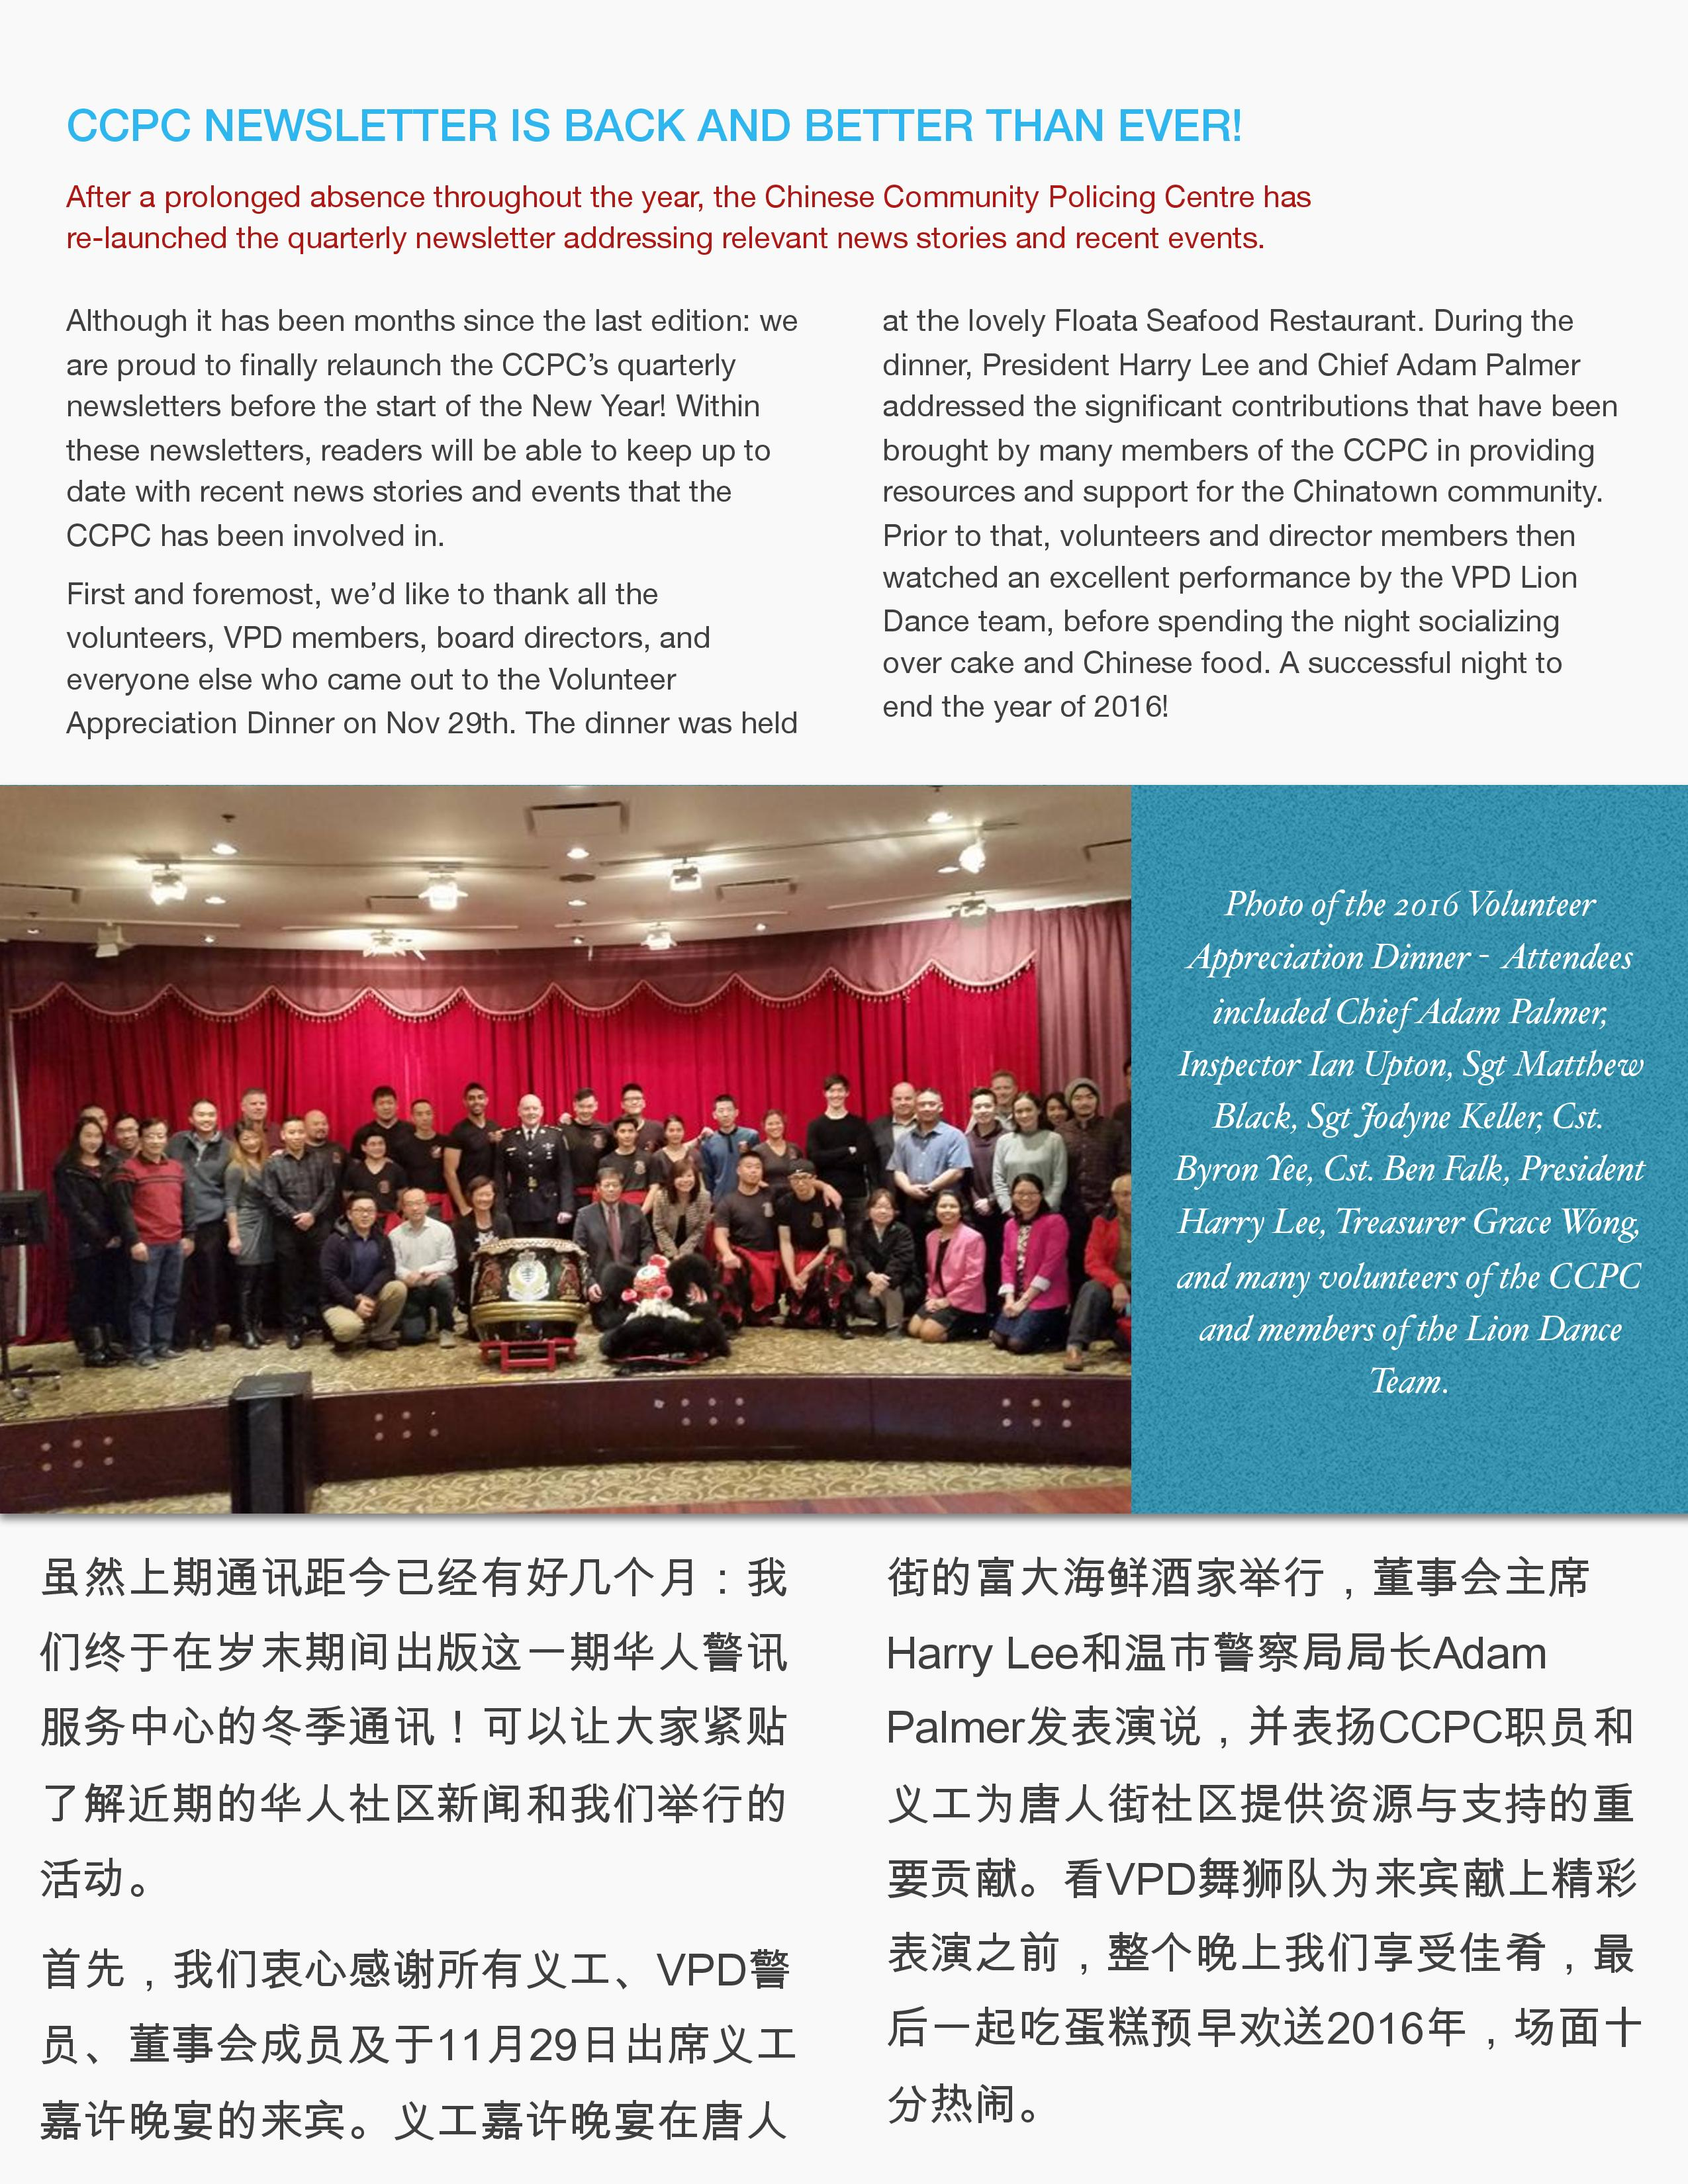 CCPC_Winter_Newsletter_Simplified_Chinese_Edition_-page-002